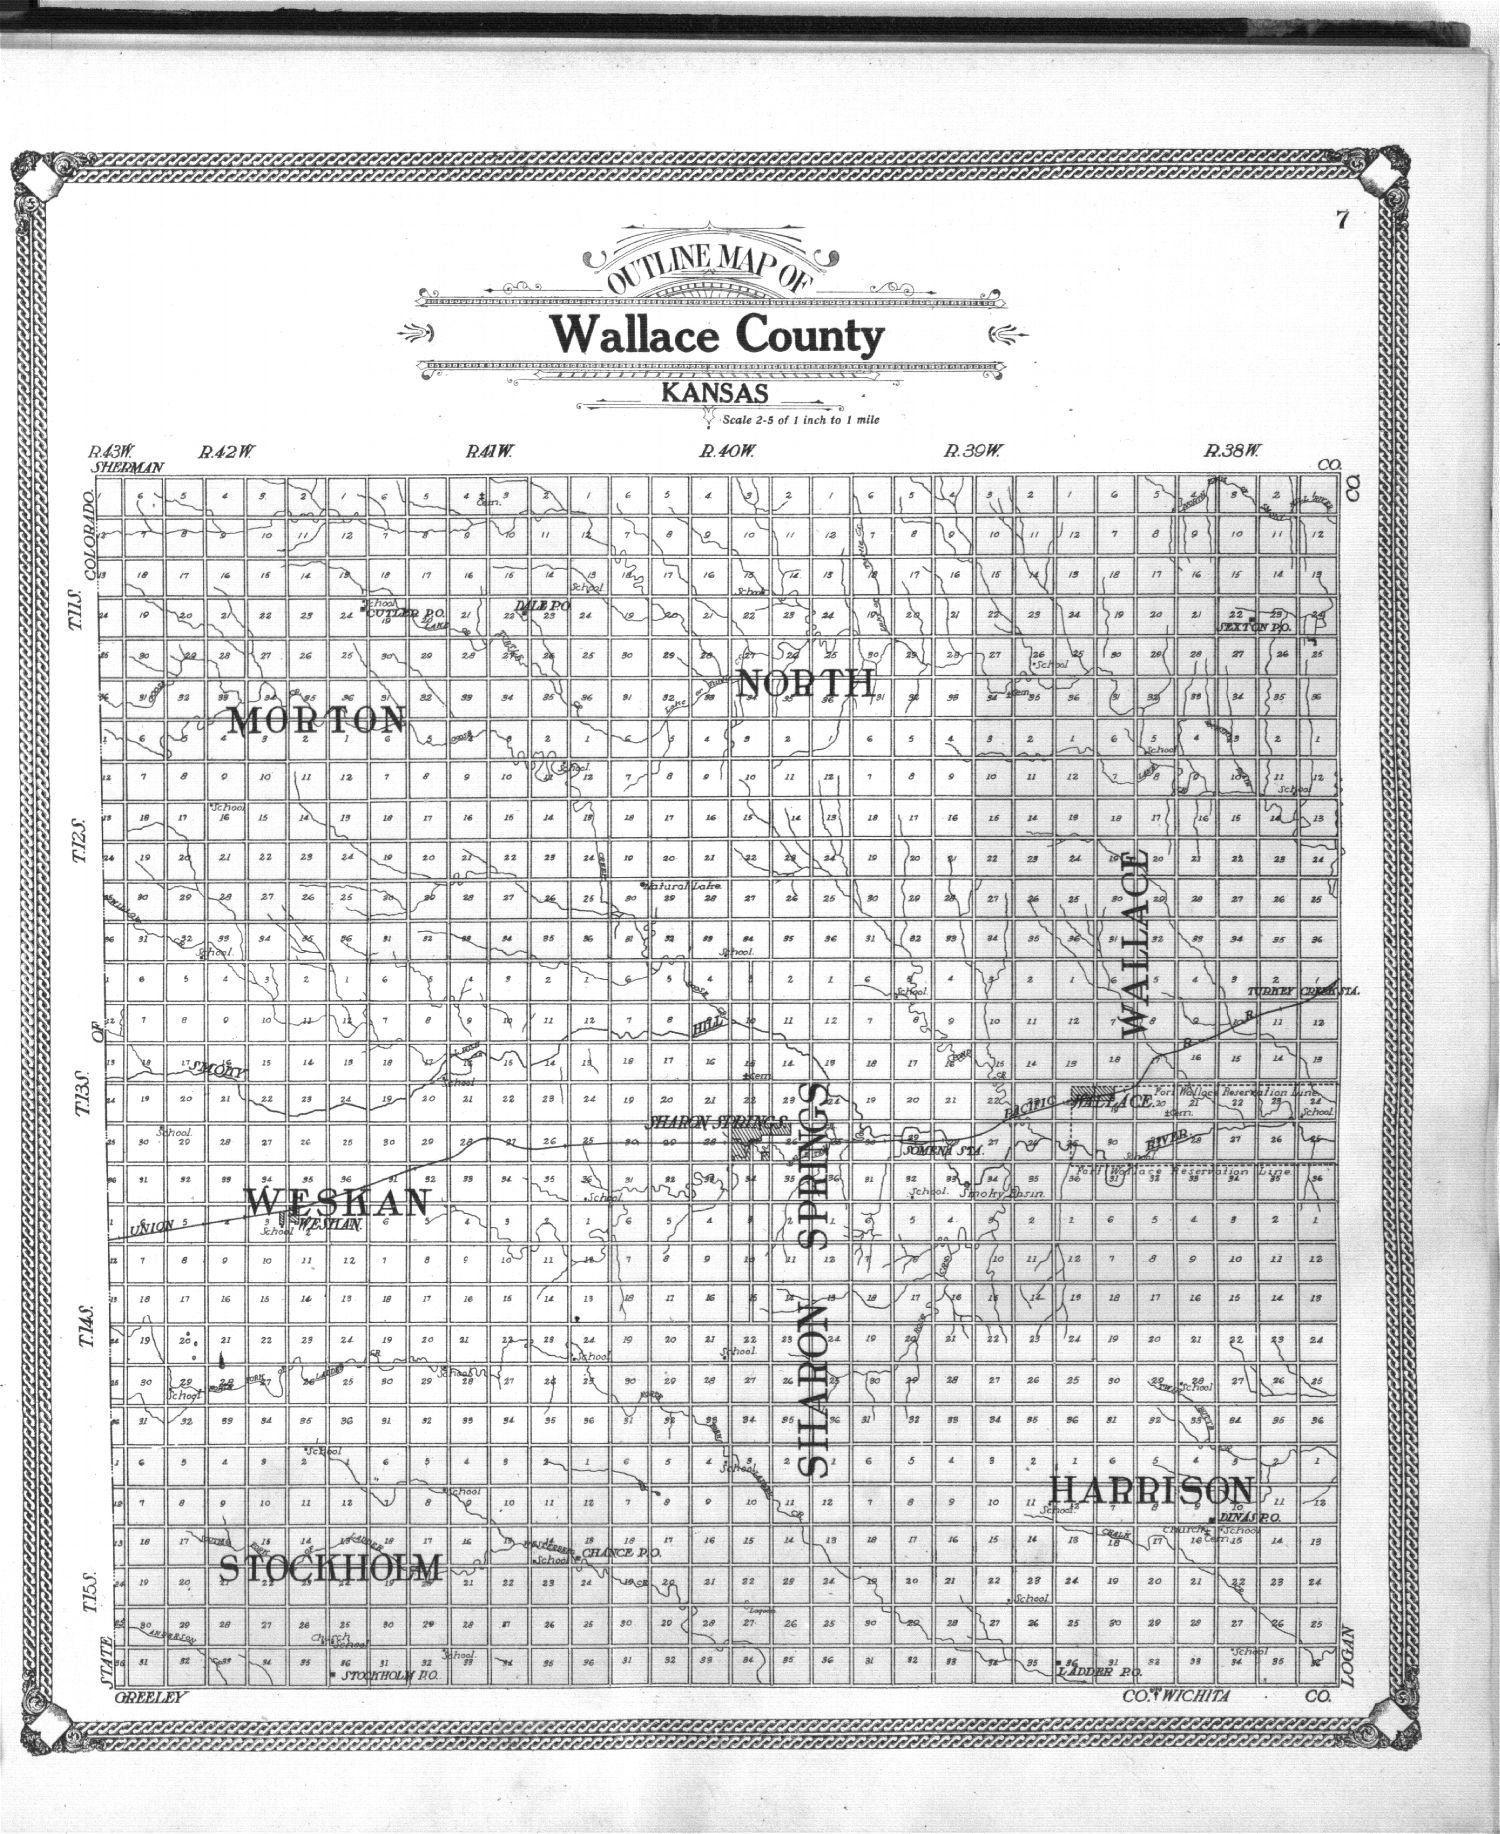 Standard atlas of Wallace County, Kansas - 7